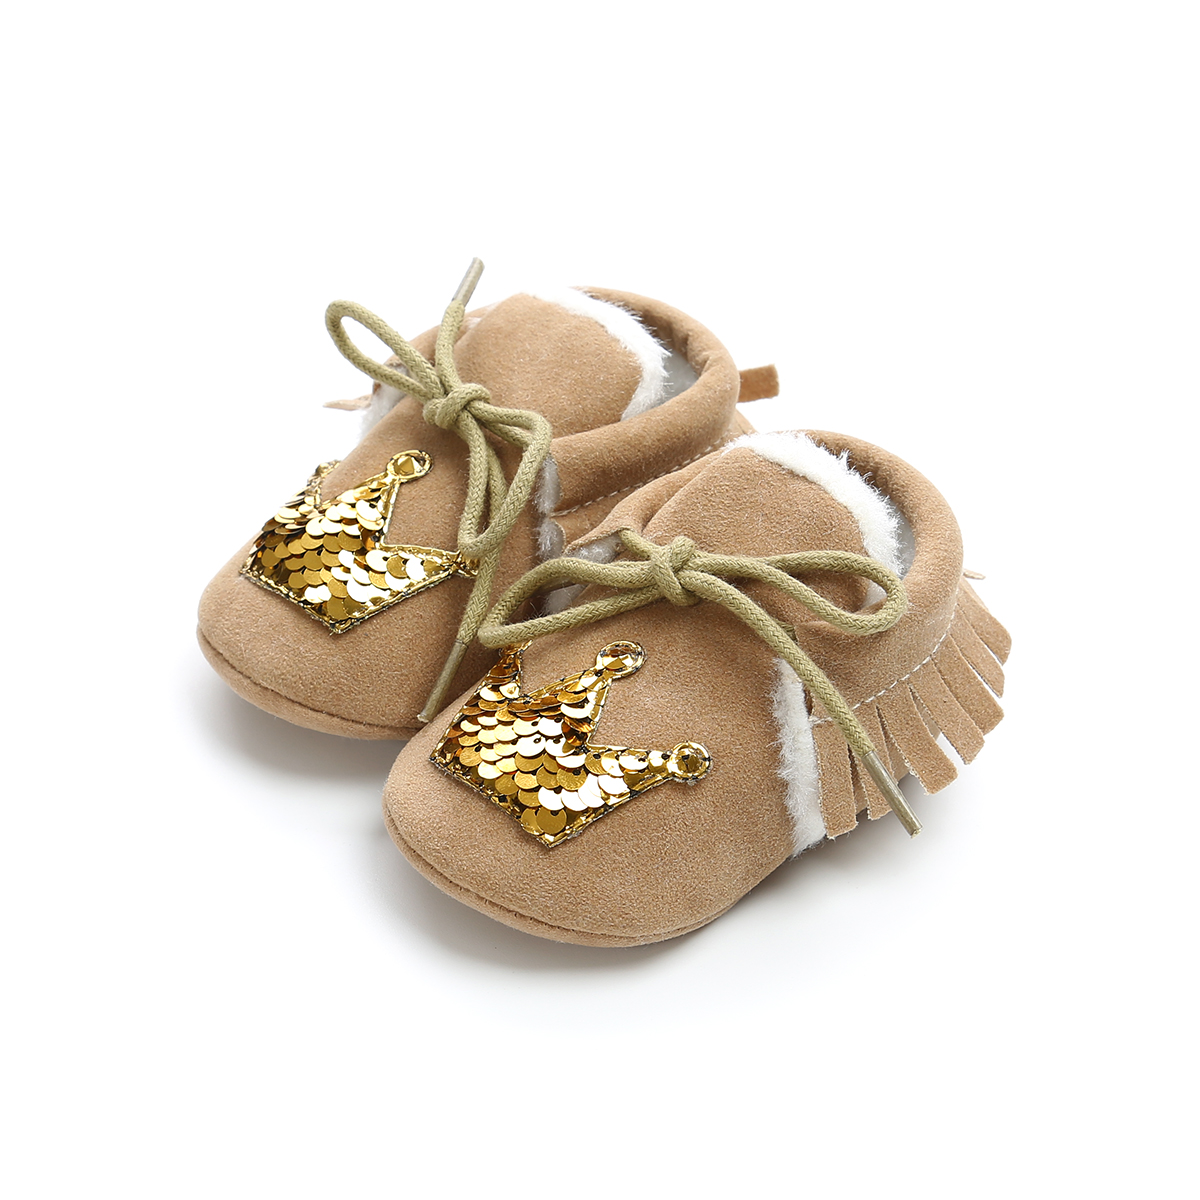 Infant Newborn Baby Girl Brib Shoes Bow Printing Soft Sole Anti-Slip Princess Shoes